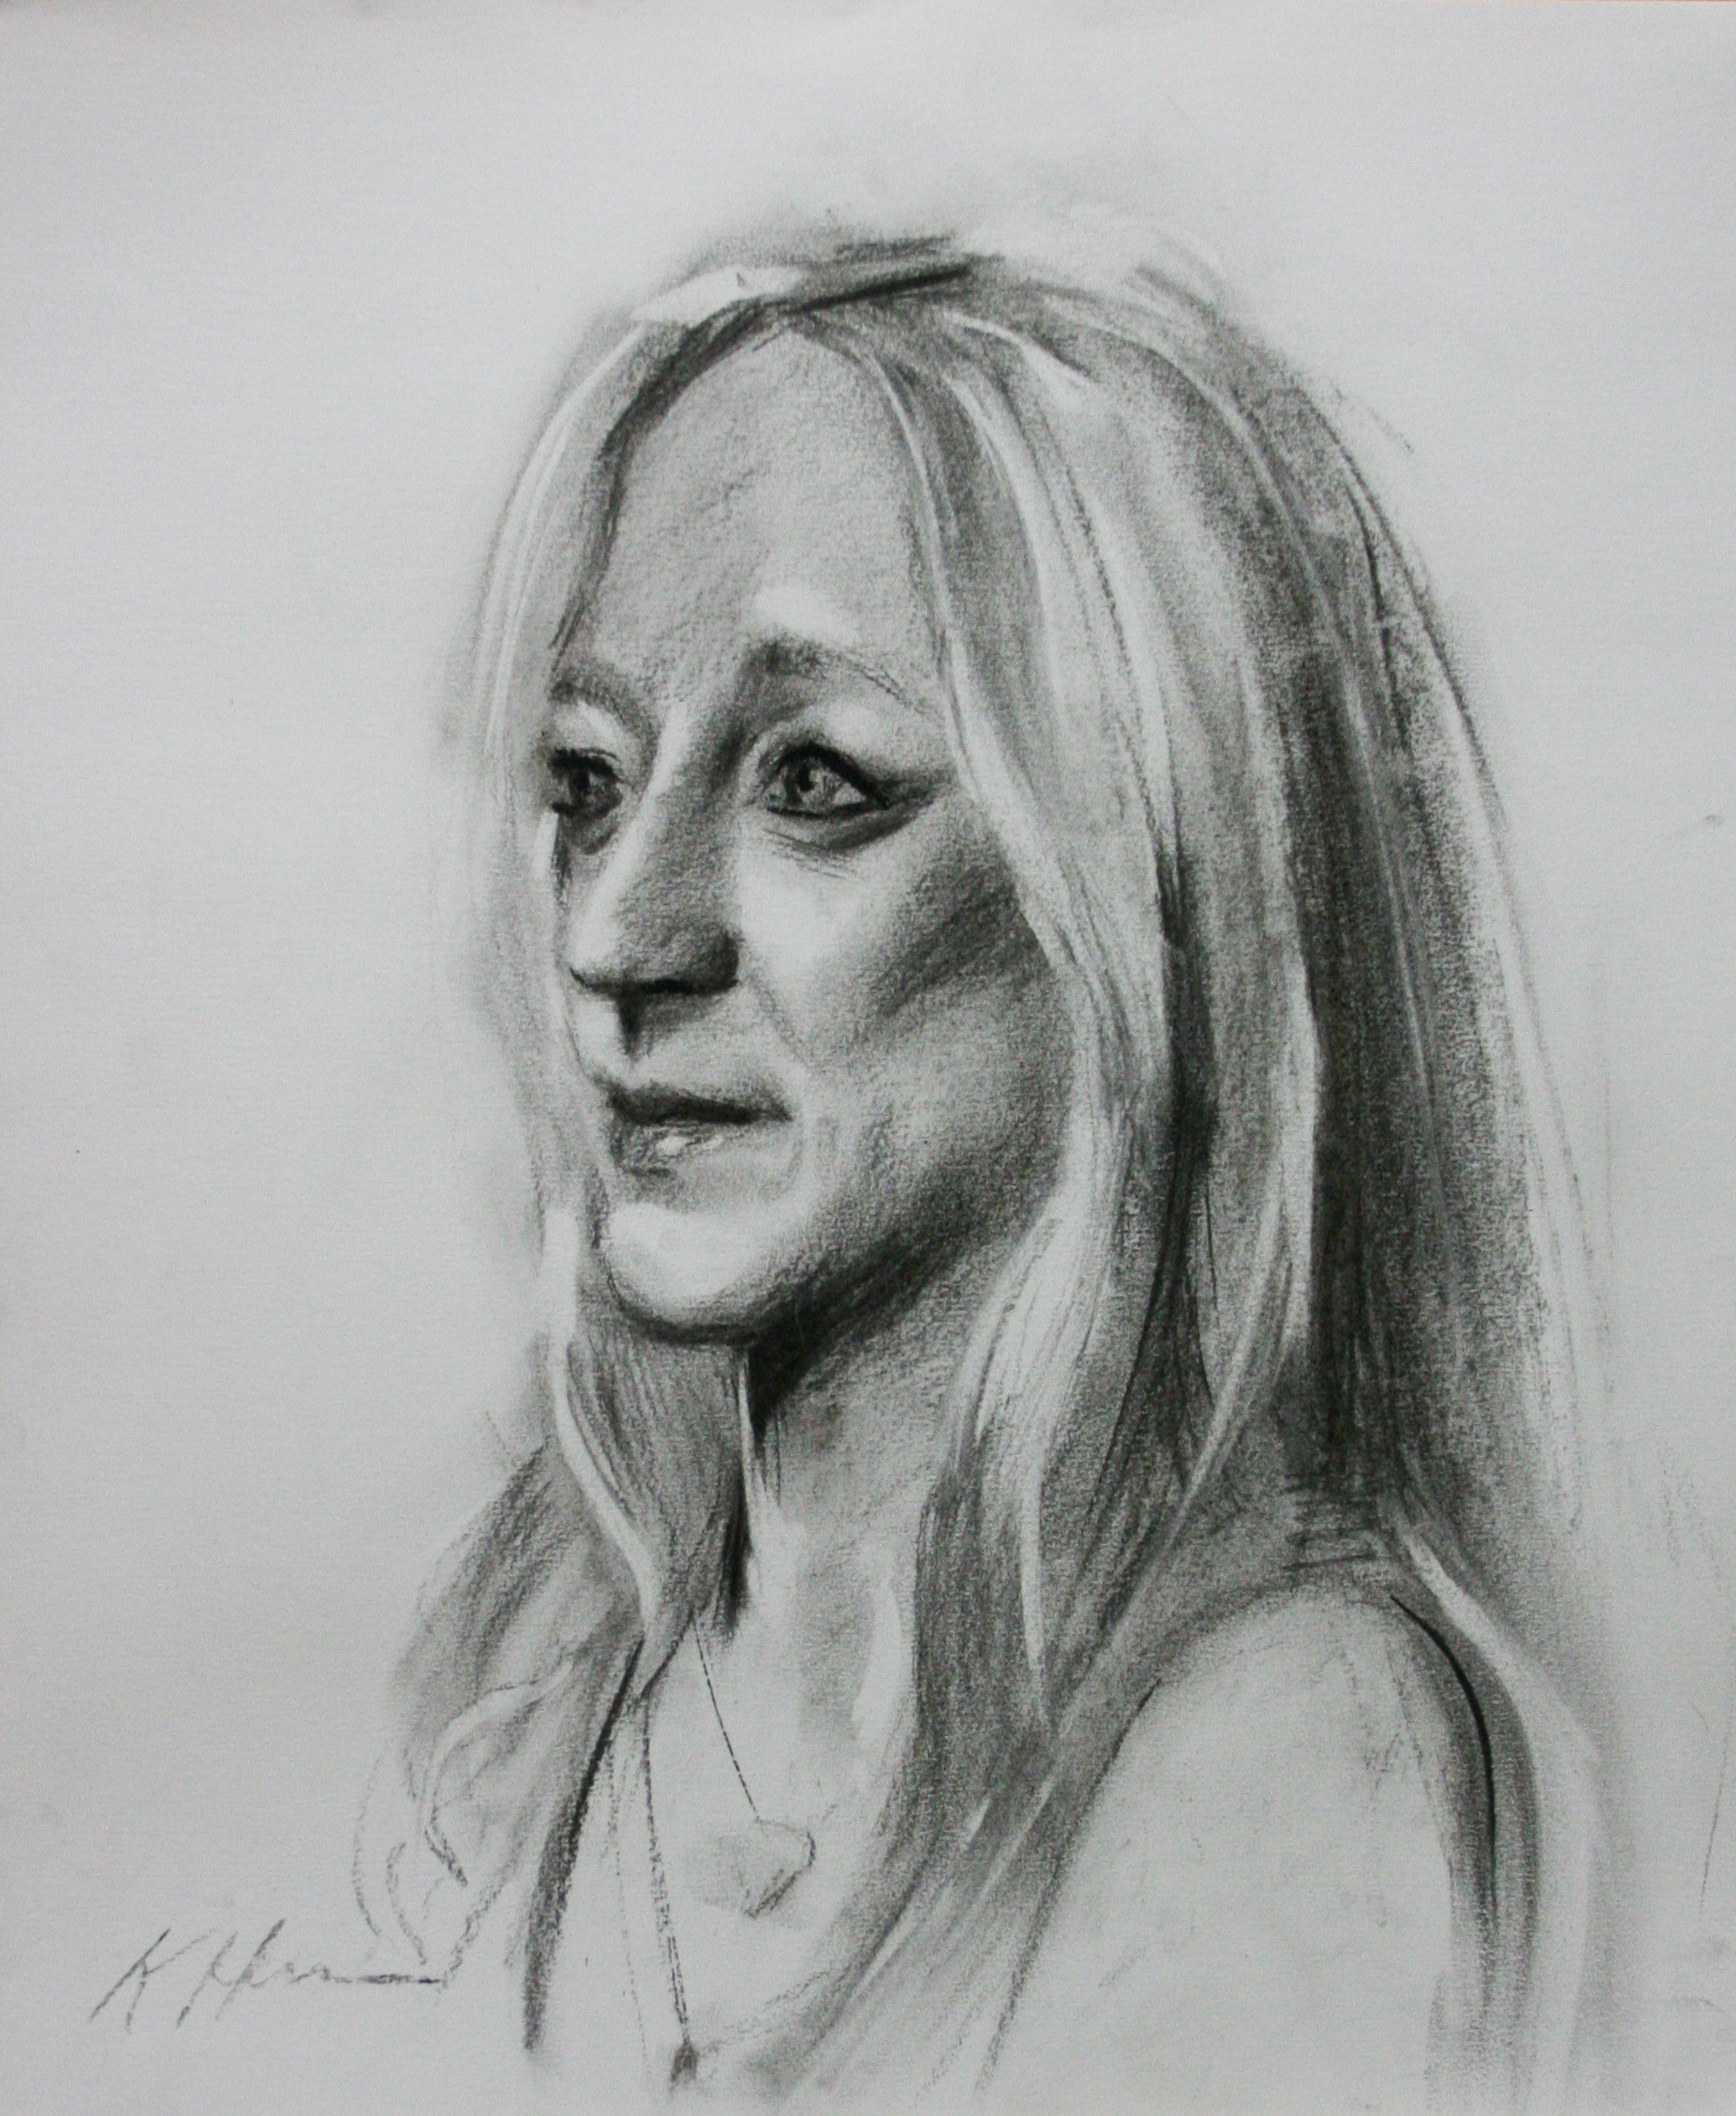 Kathryn Heim did this hour and a half drawing.